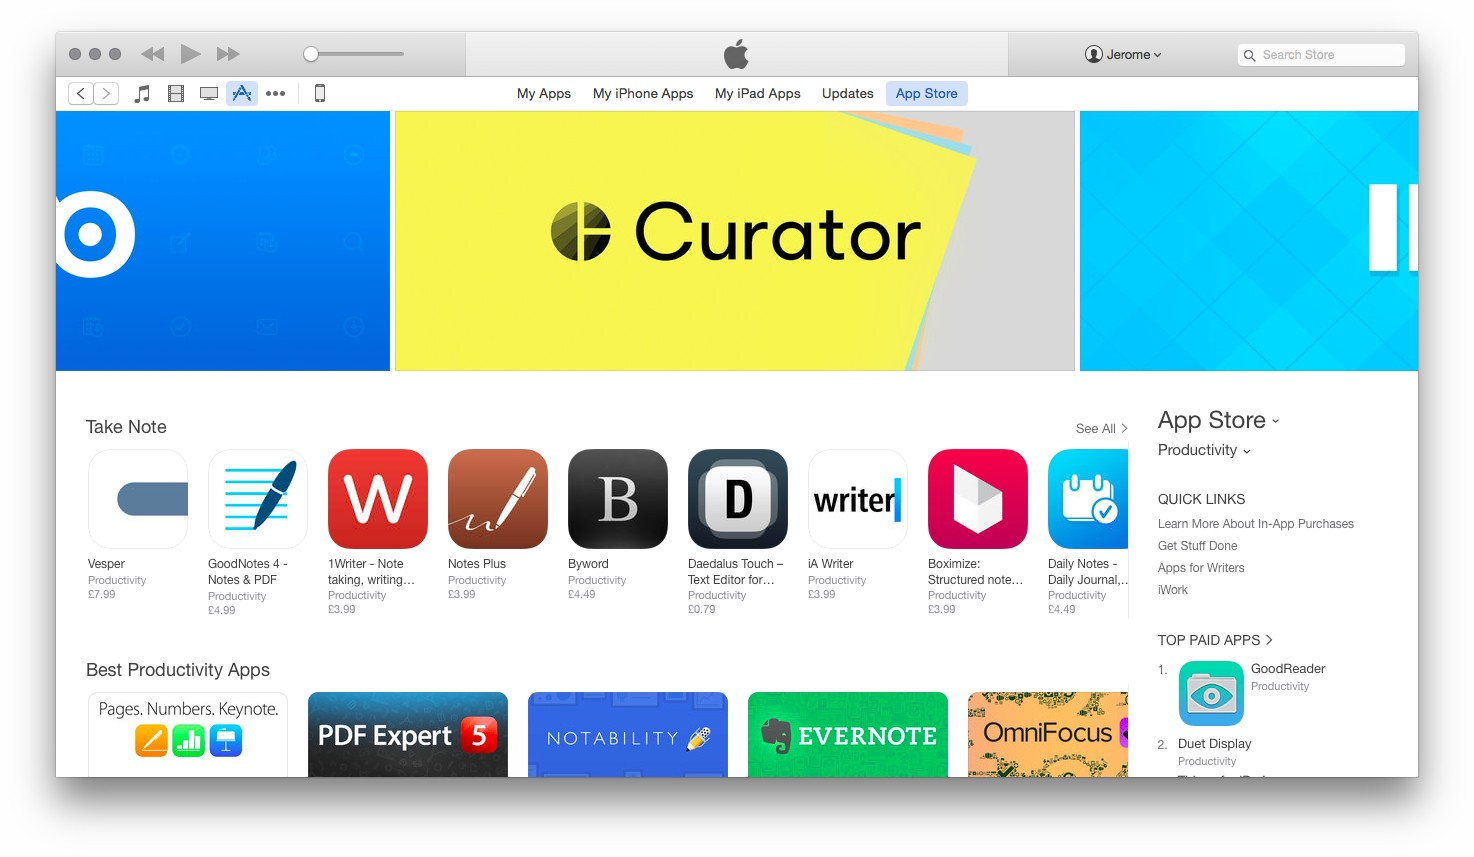 Curator app, on the App Store